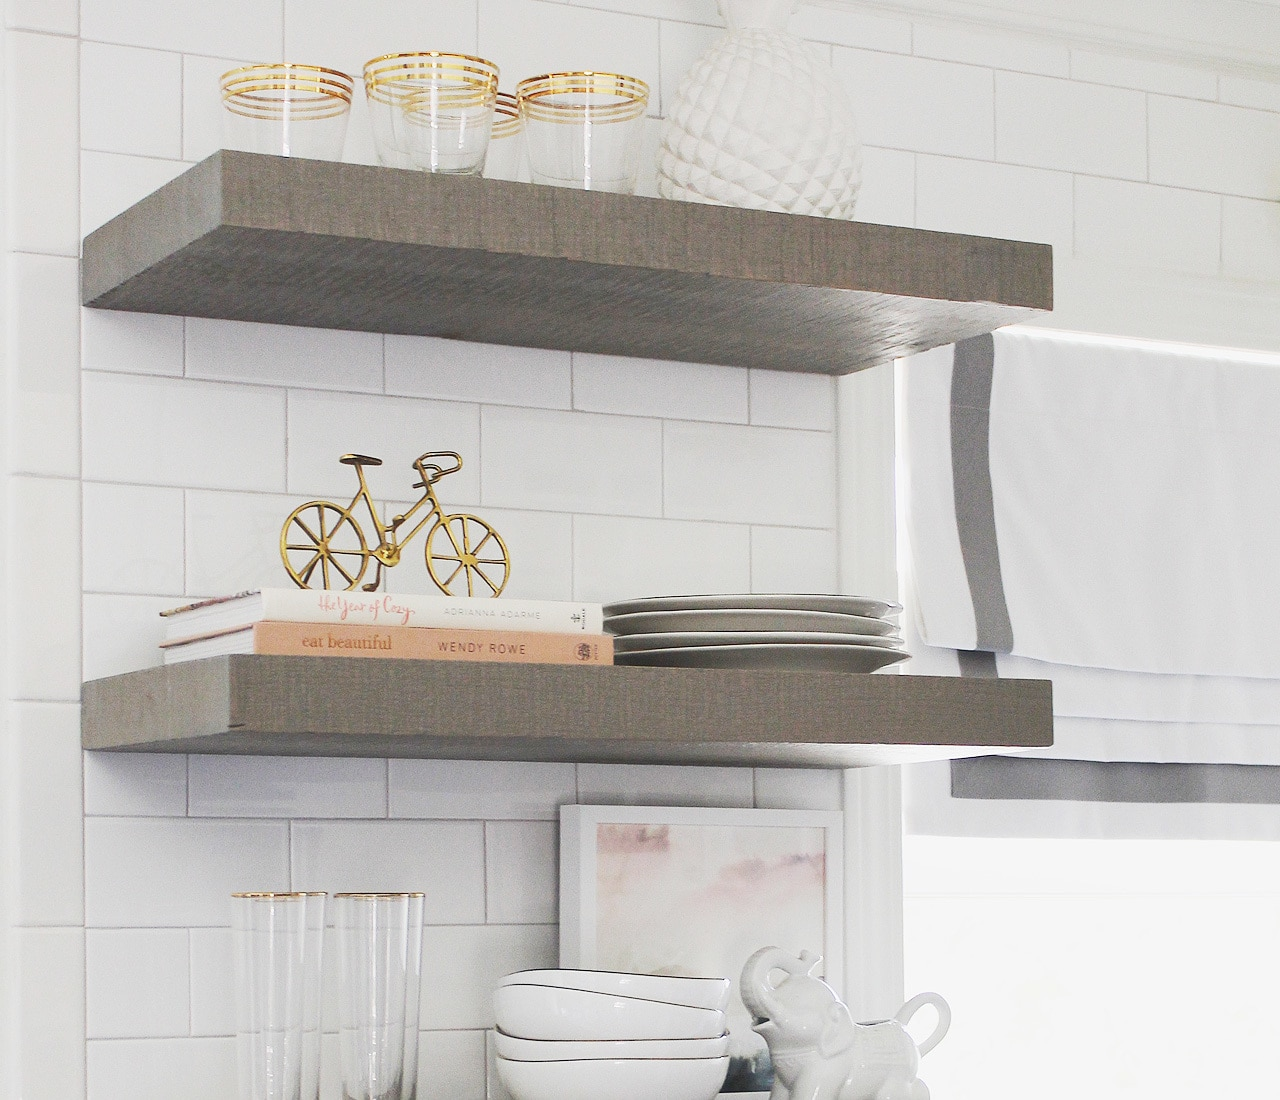 floating shelf bracket fits inch shelves gray kitchen light deep easily install with our steel pine shelving unit narrow bathroom ideas rustic wood computer desk under bath sink